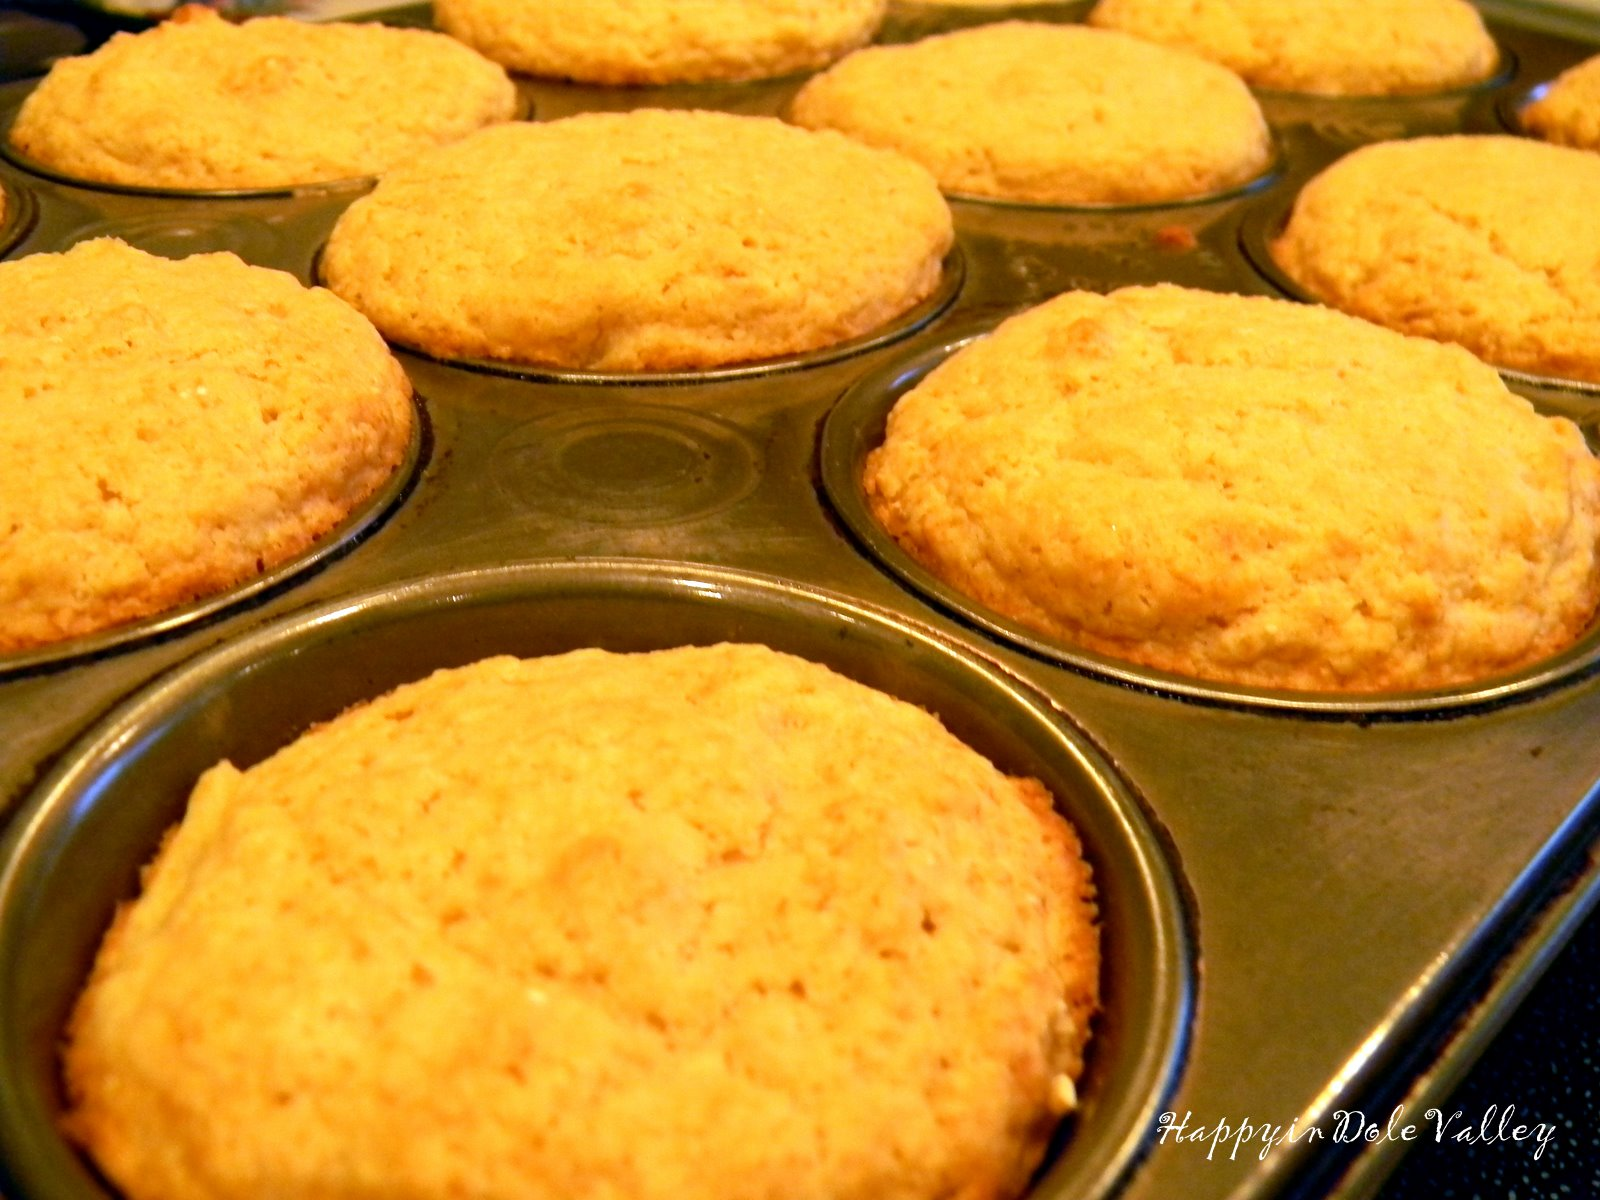 Happy in Dole Valley: Muffin Monday - Whole Wheat ...